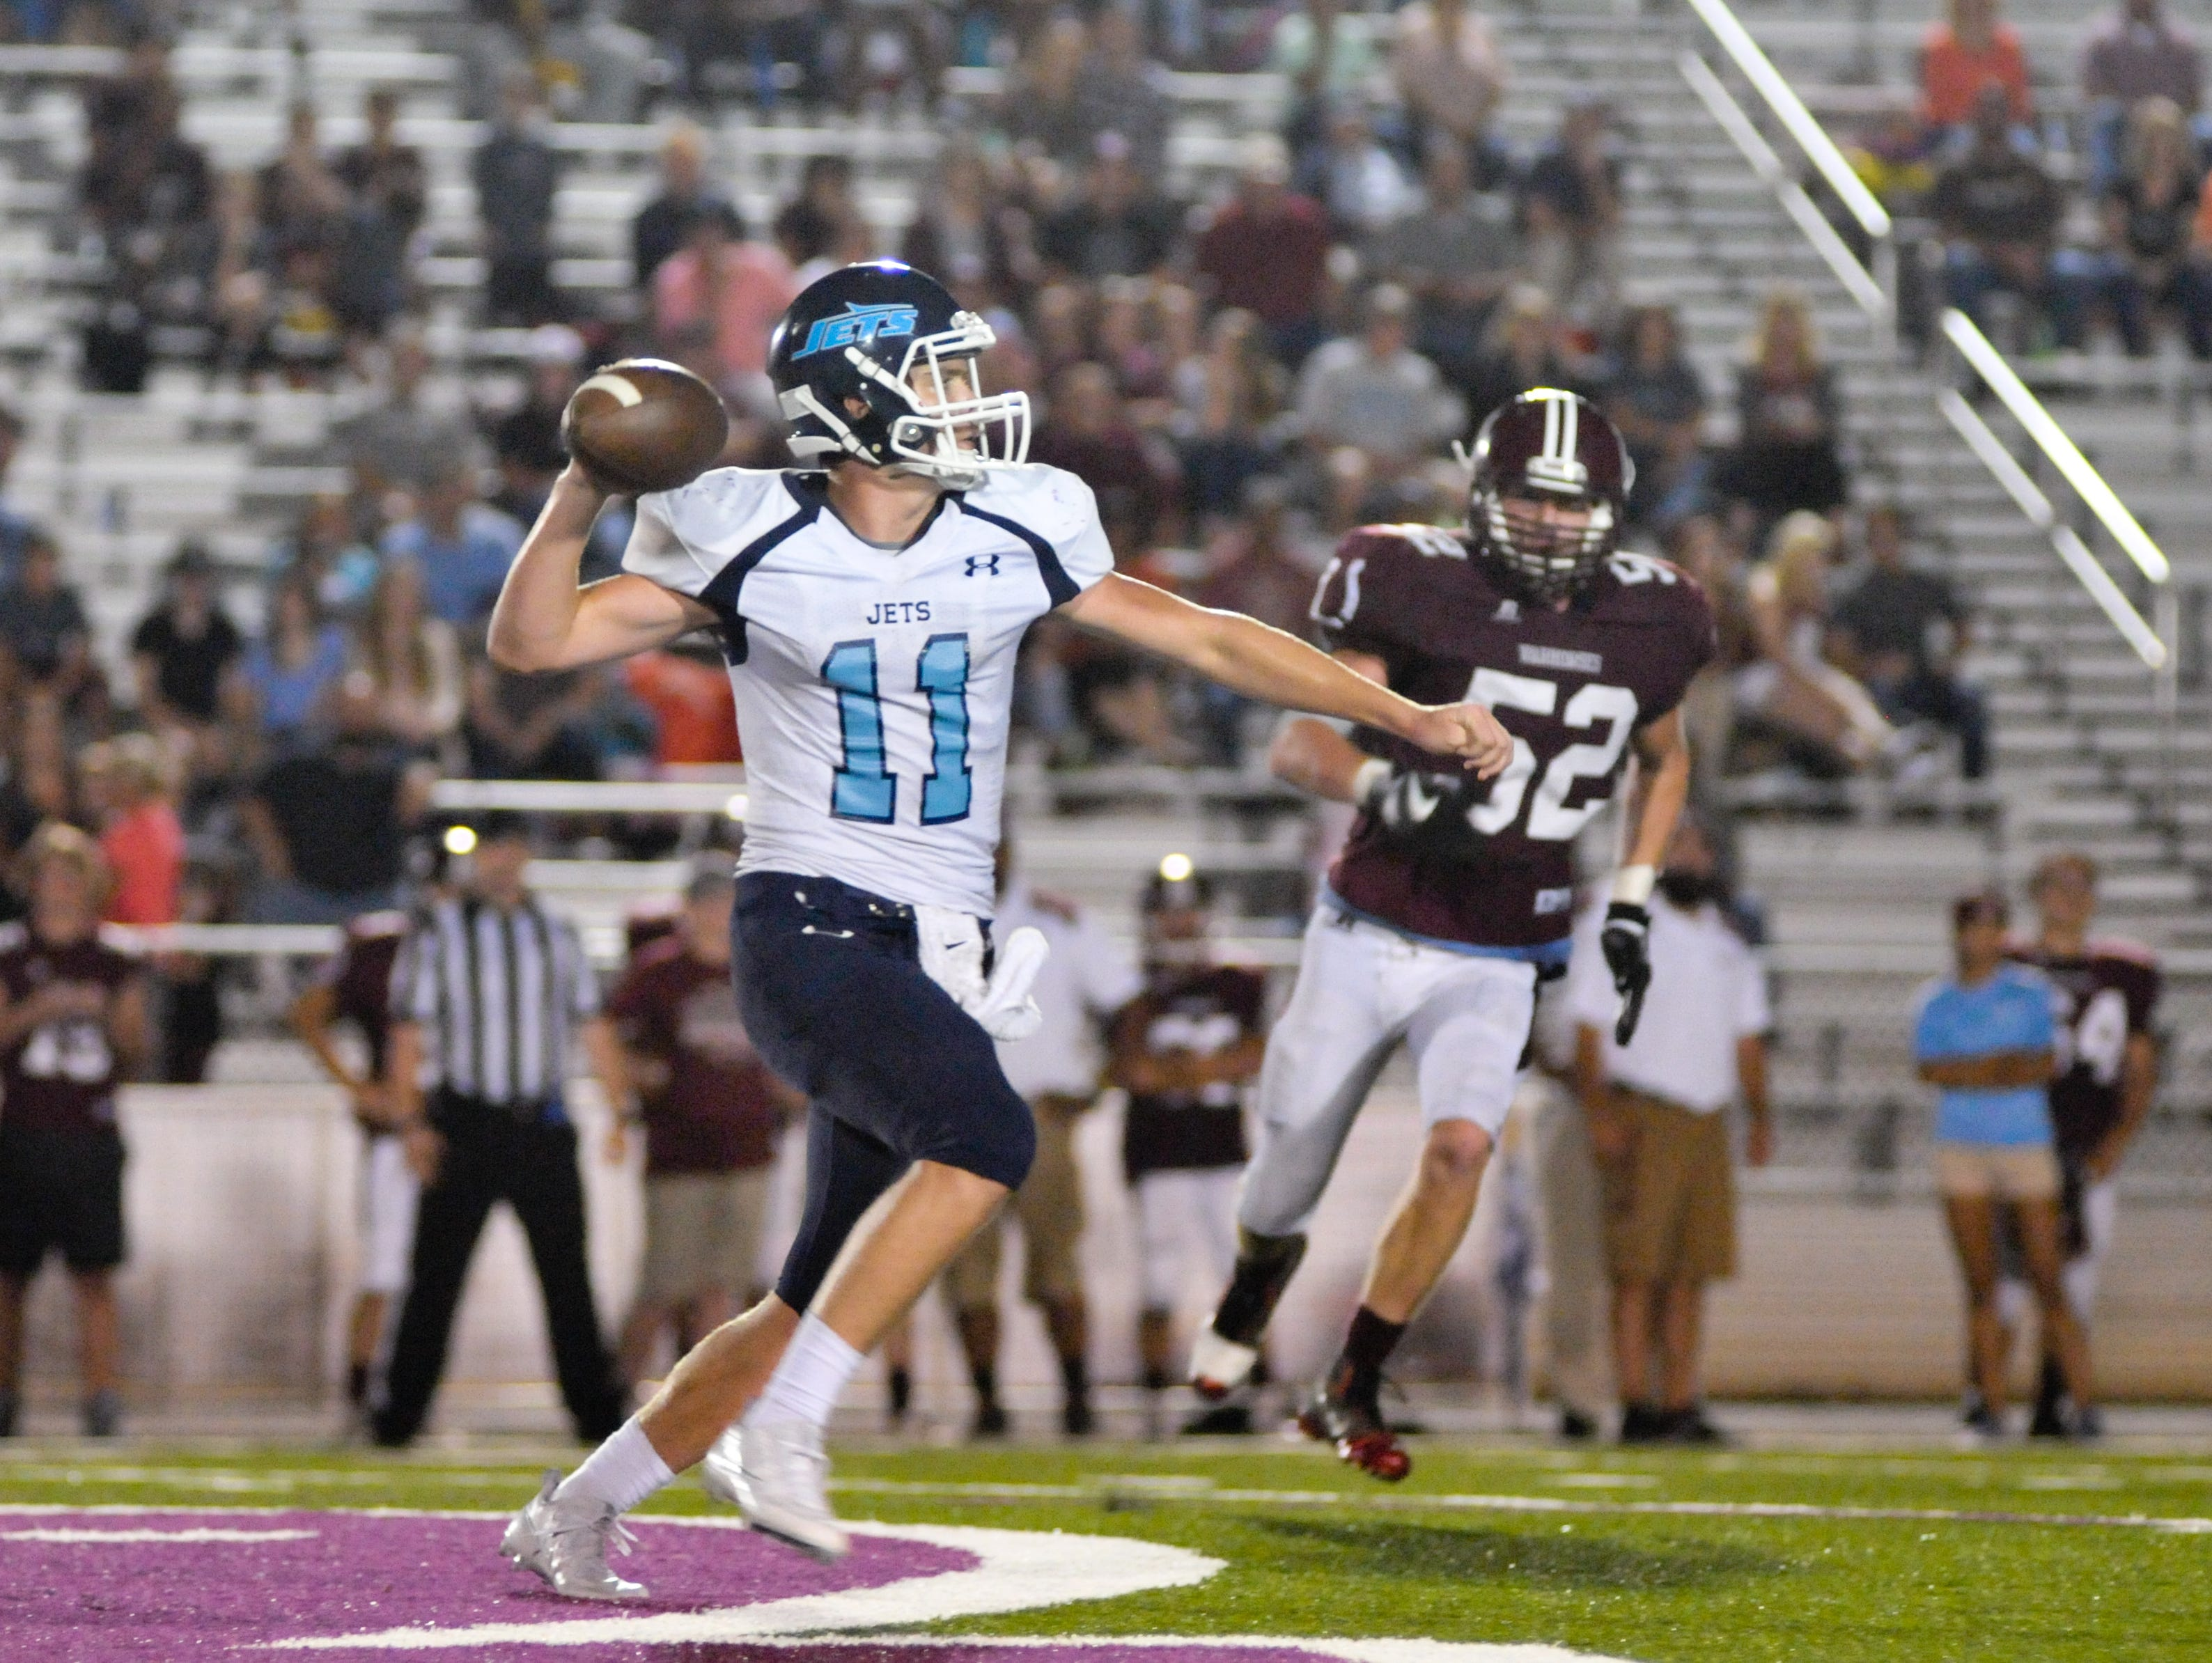 Avery Holbrook (11) and Enka are home for Friday's game against Pisgah.